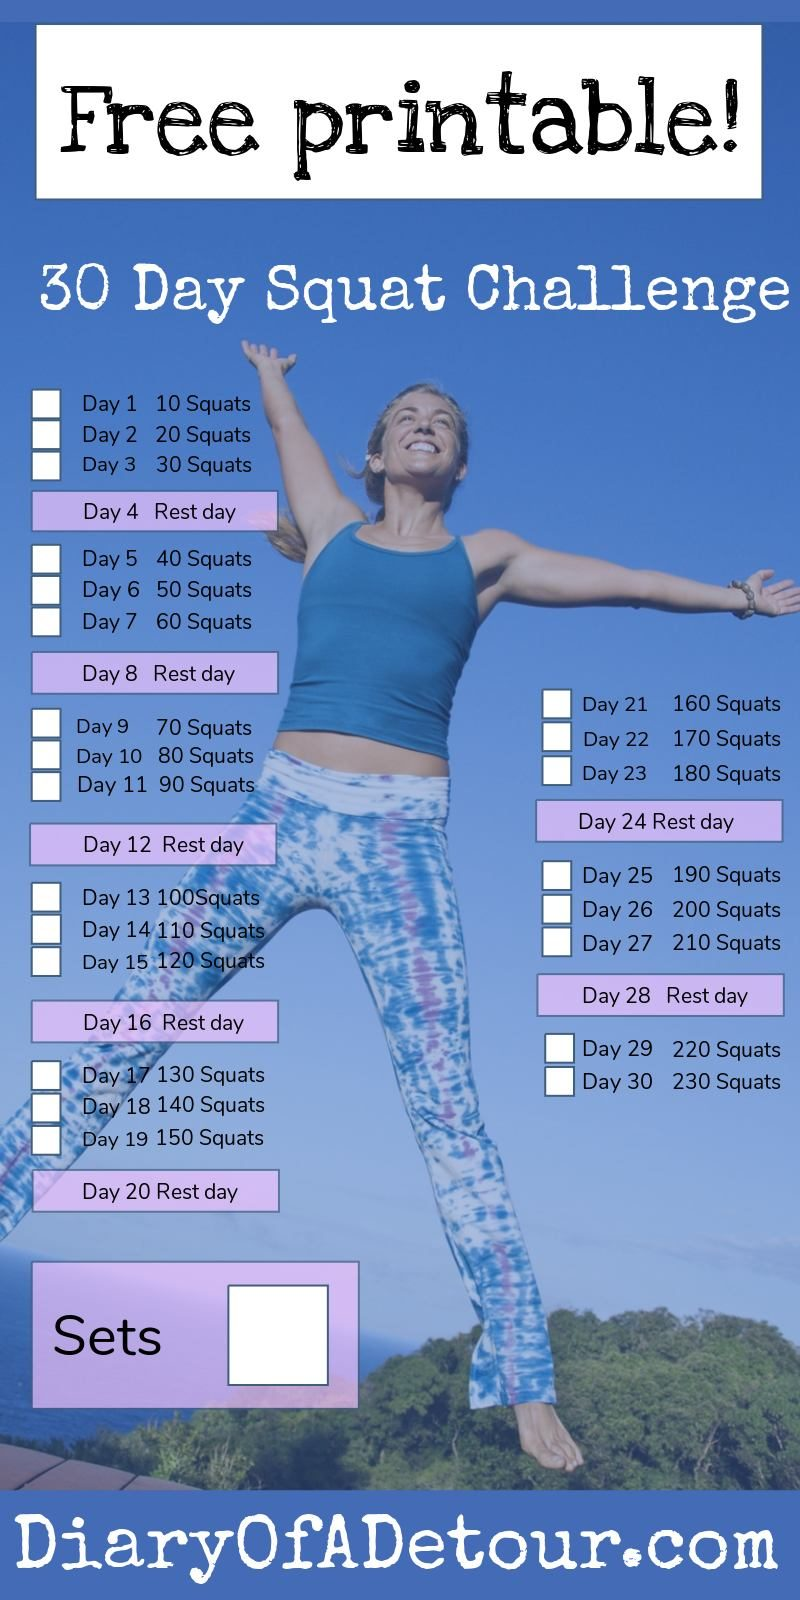 photo about 30 Day Squat Challenge Printable called 30 working day squat situation : a health and fitness difficulty for all skills